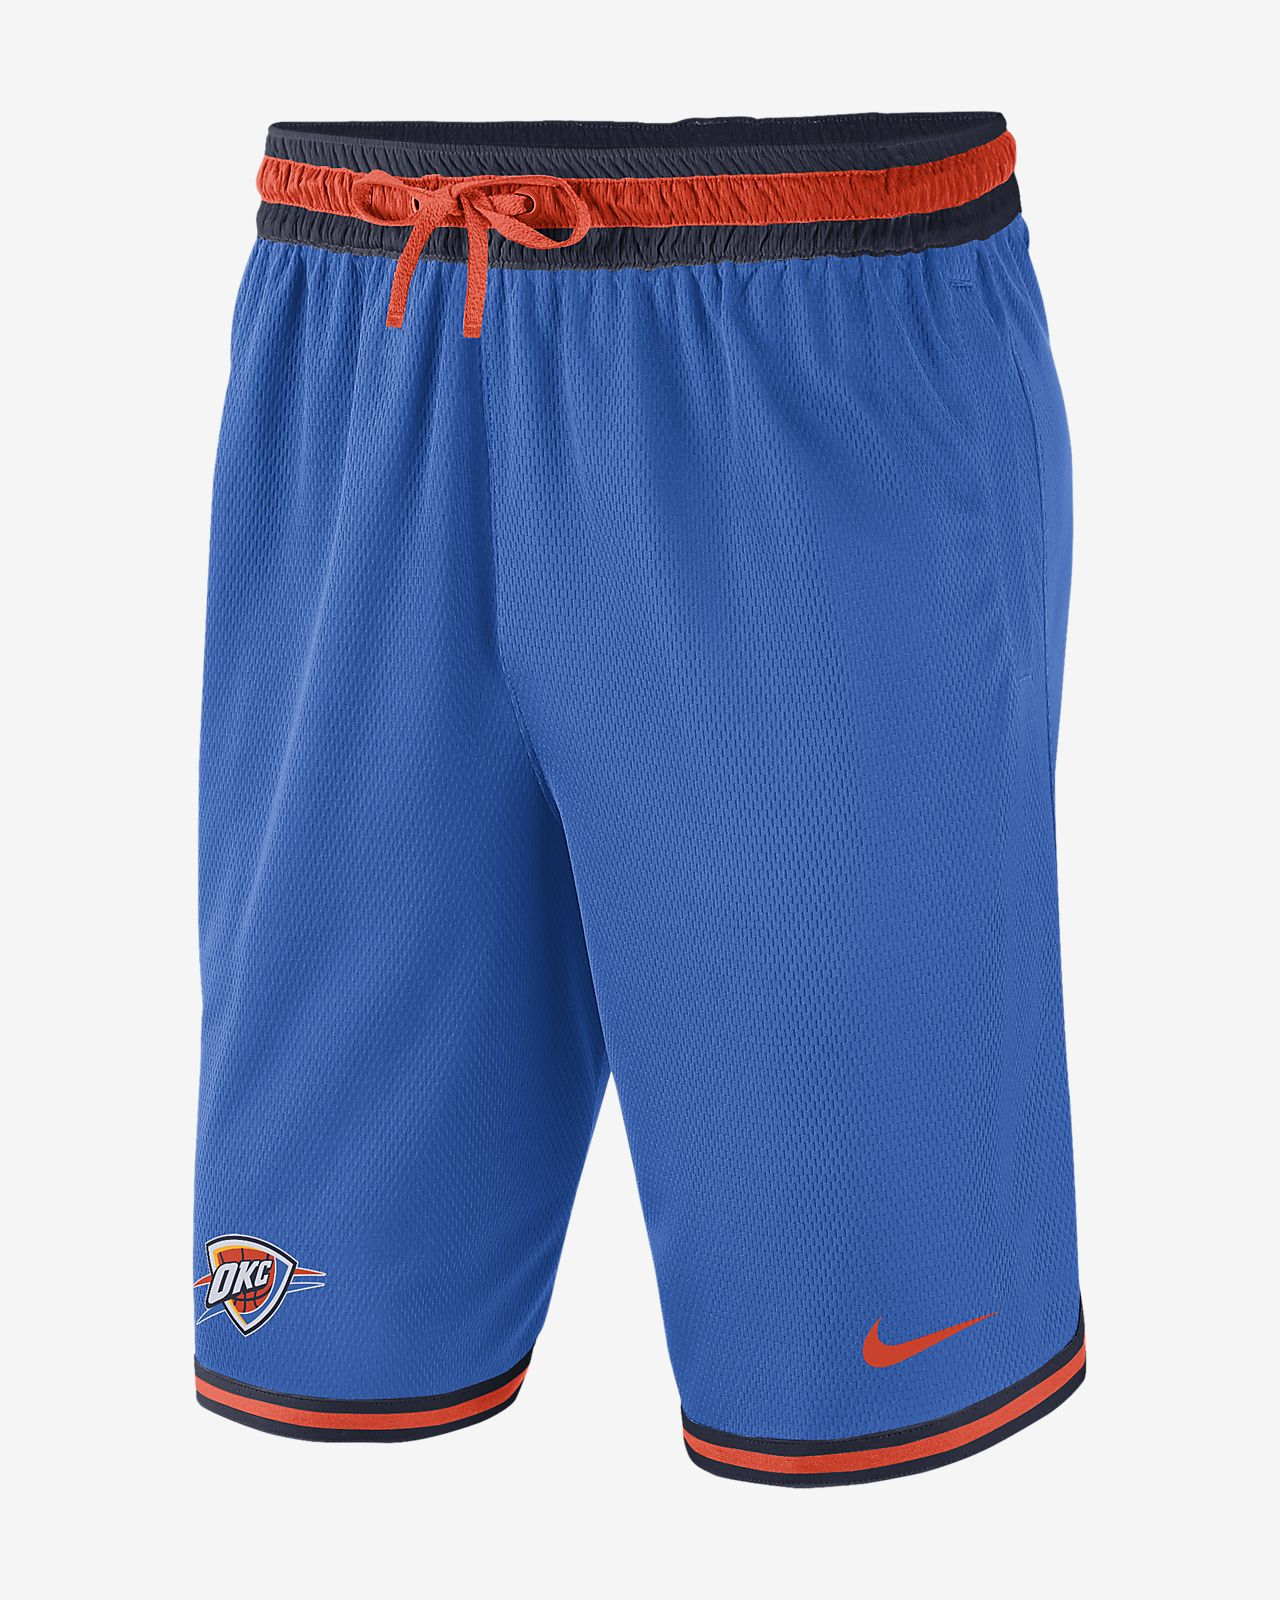 Oklahoma City Thunder Nike Men's NBA Shorts